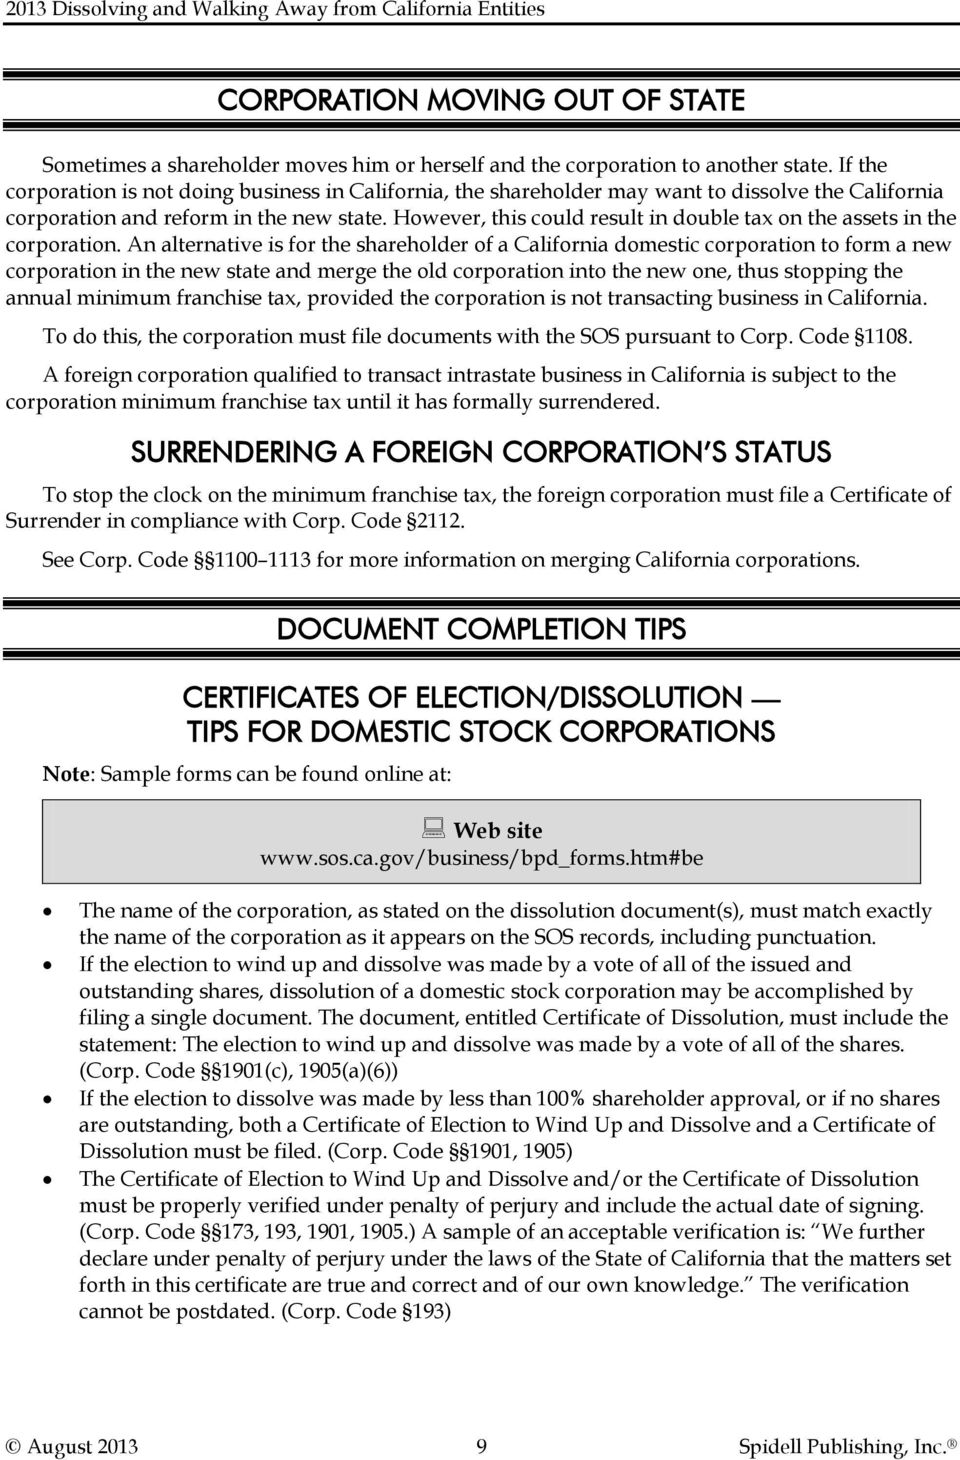 2013 dissolving and walking away from california entities pdf however this could result in double tax on the assets in the corporation xflitez Images